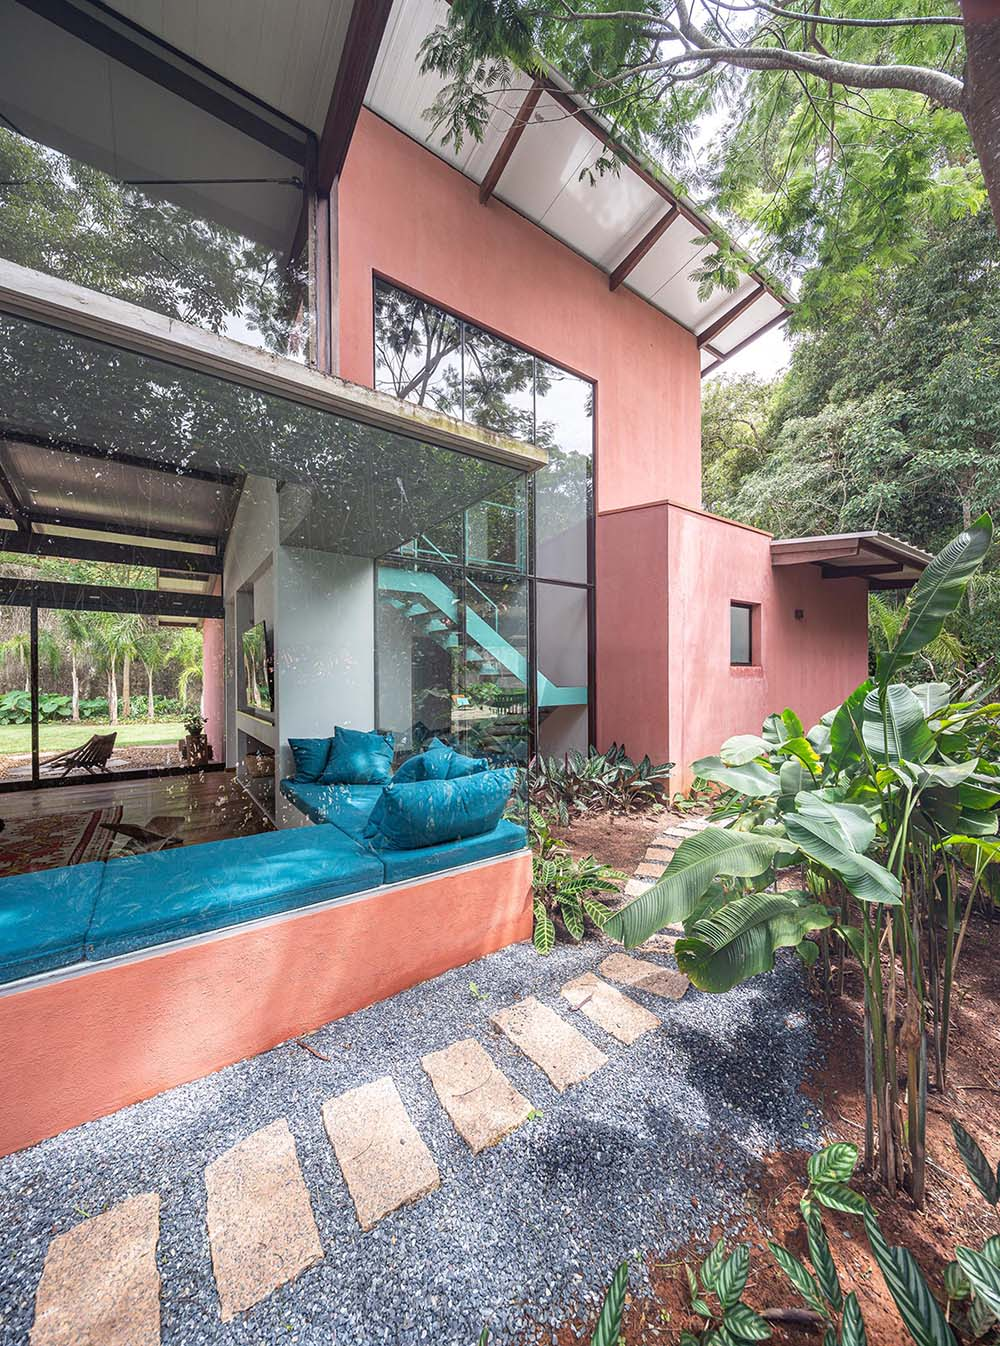 Rocco Arquitetos has completed the 'Itauba House' in Sao Paulo, Brazil, that includes a wrap-around corner window bench as part of the overall design.